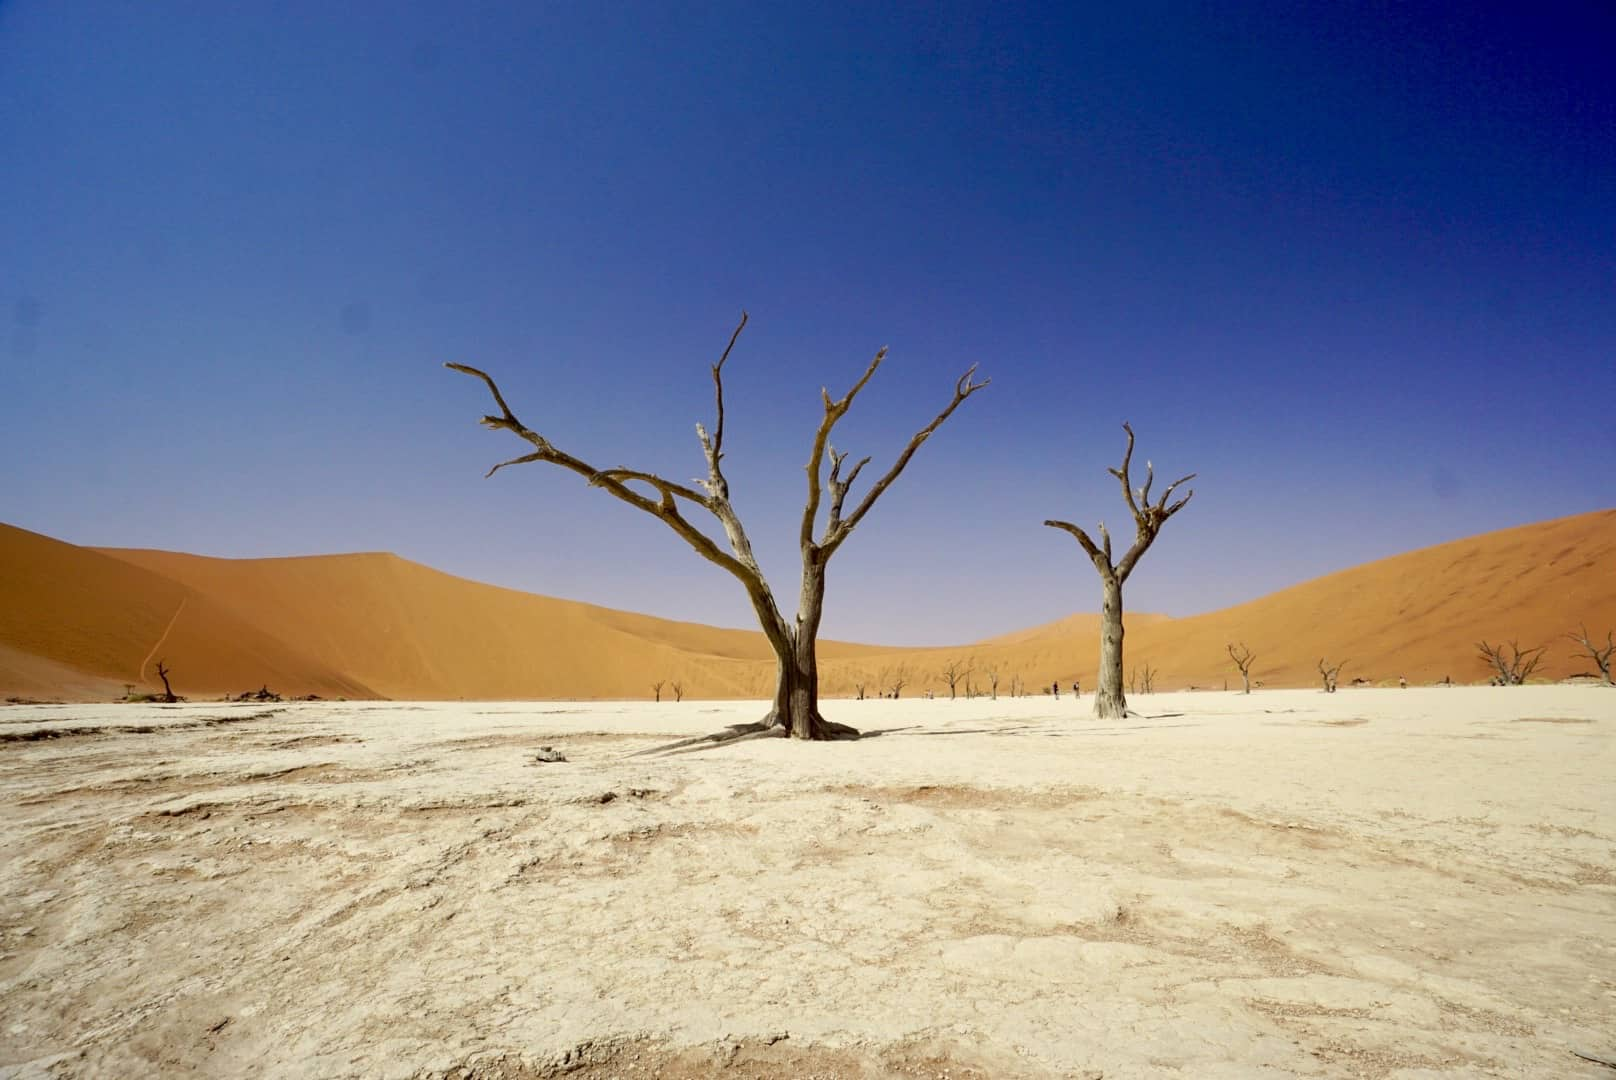 Dead Acacia trees in Africa